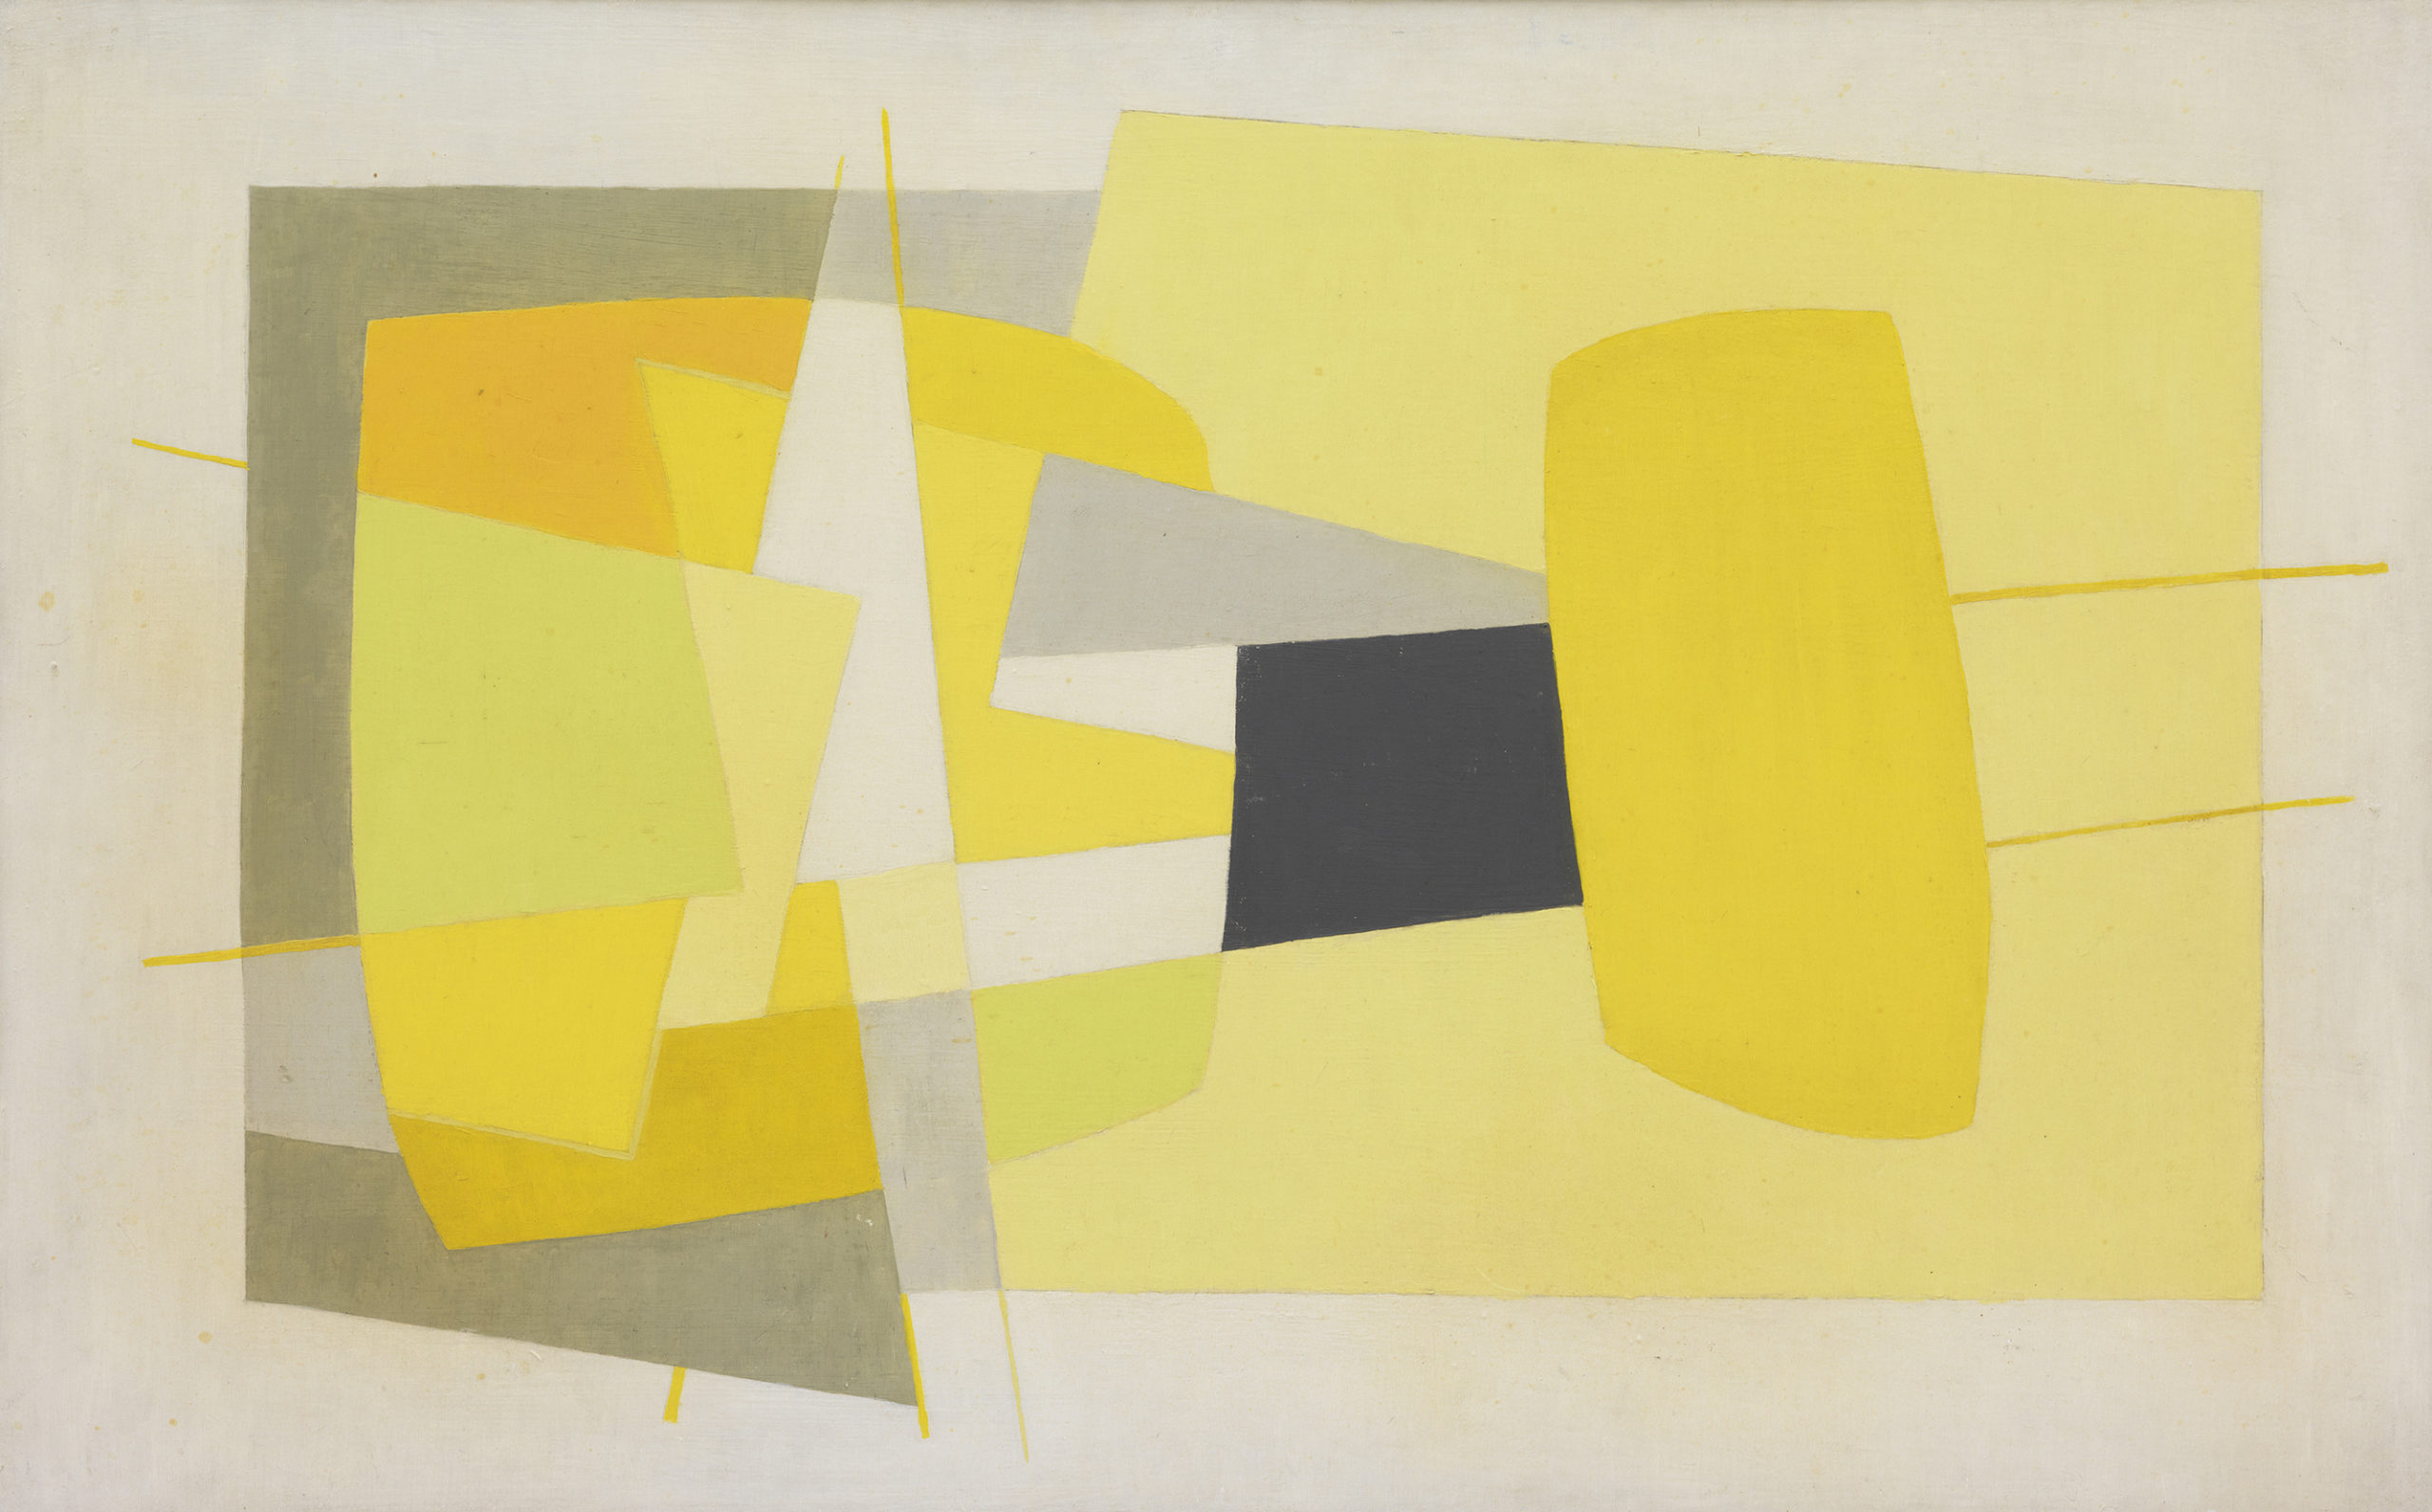 Saloua Raouda Choucair, Composition in Yellow, 1962–65, Oil on fiberboard, 51.4 × 81.3 cm. Image courtesy of Barjeel Art Foundation, Sharjah.